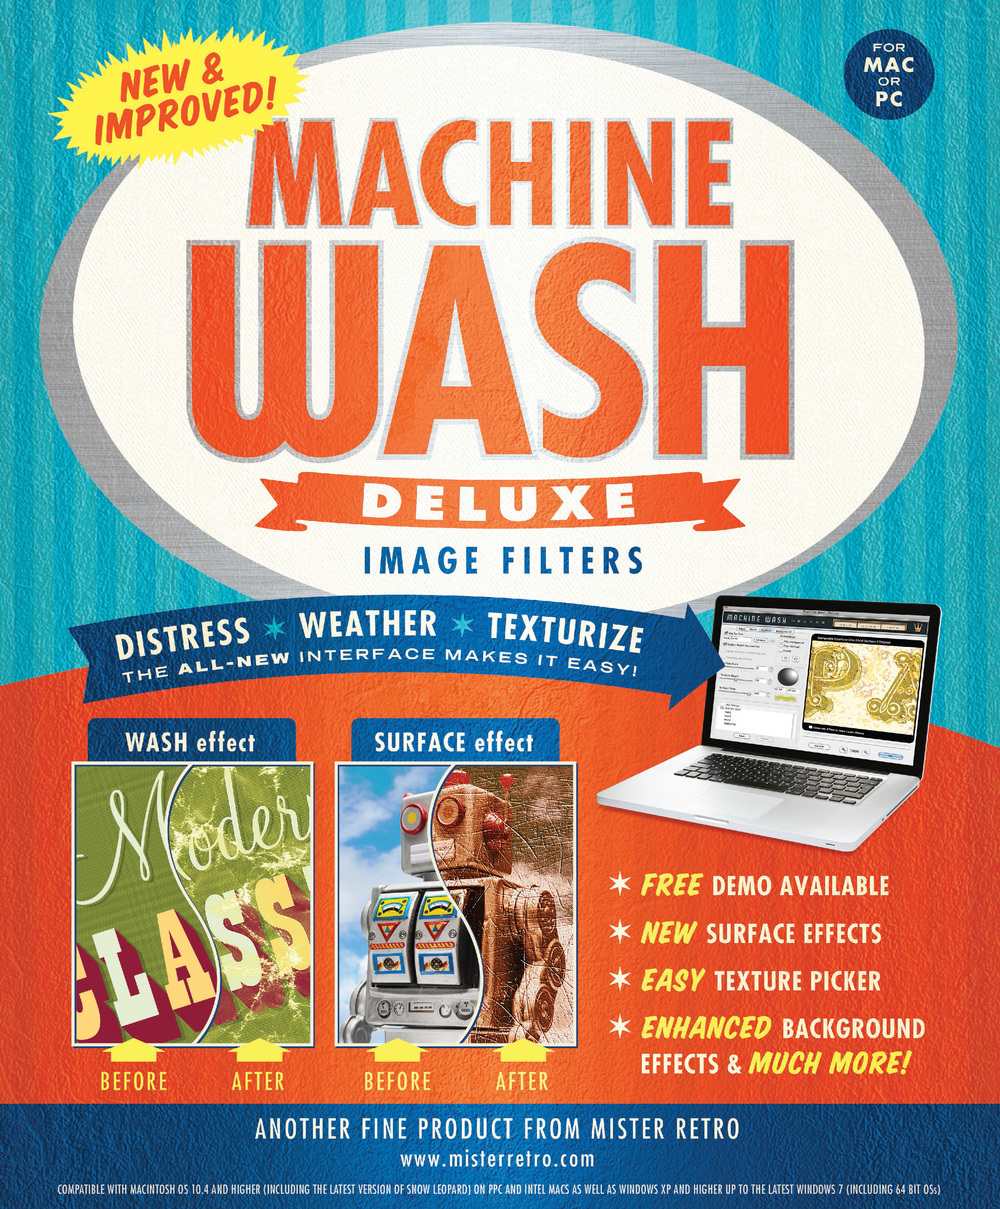 Machine Wash Deluxe ad